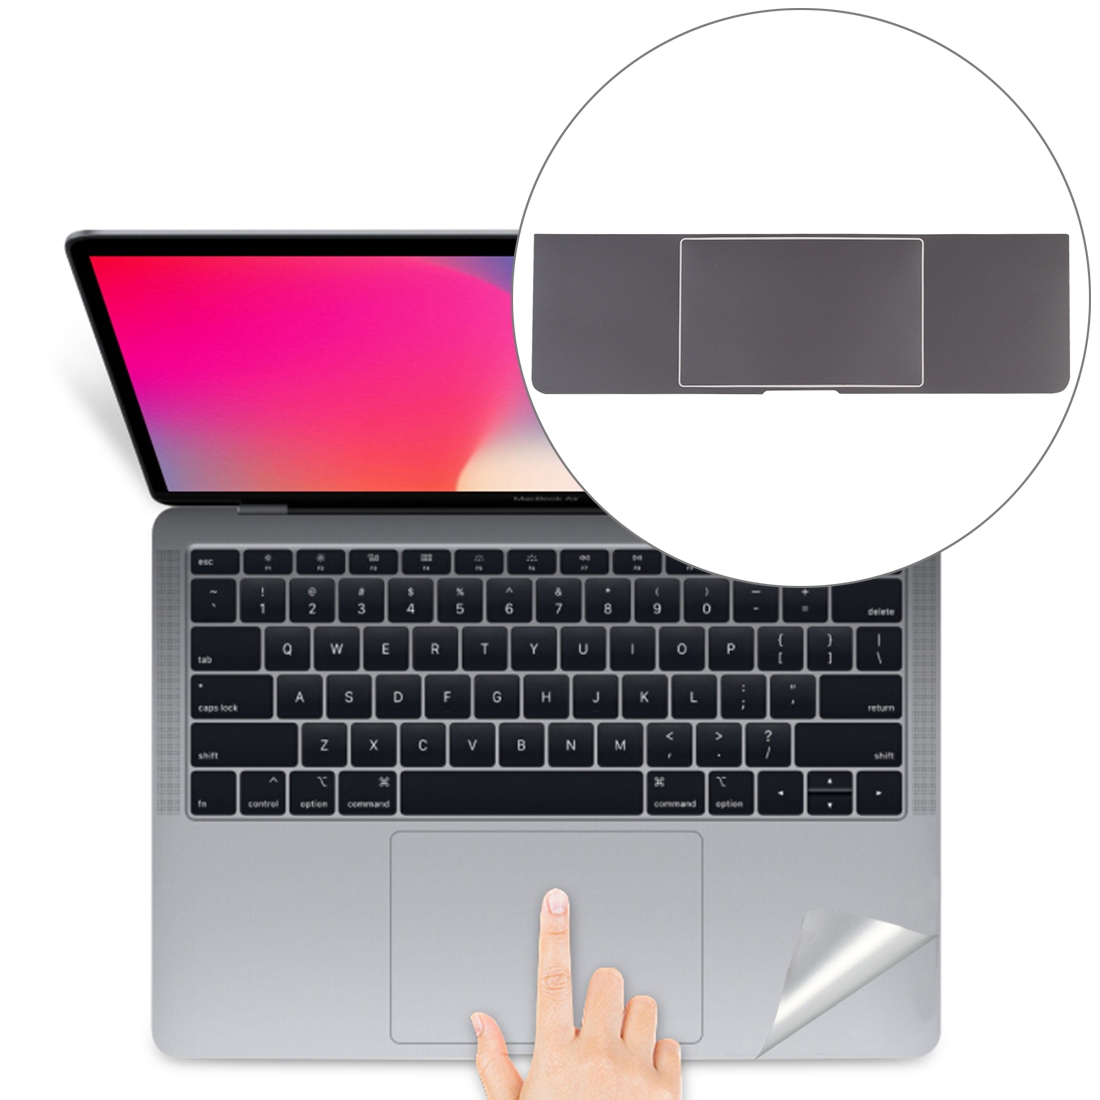 Palm & Trackpad Protector Sticker for MacBook Pro 15 with Touch Bar (A1707 / A1990) (Grey)